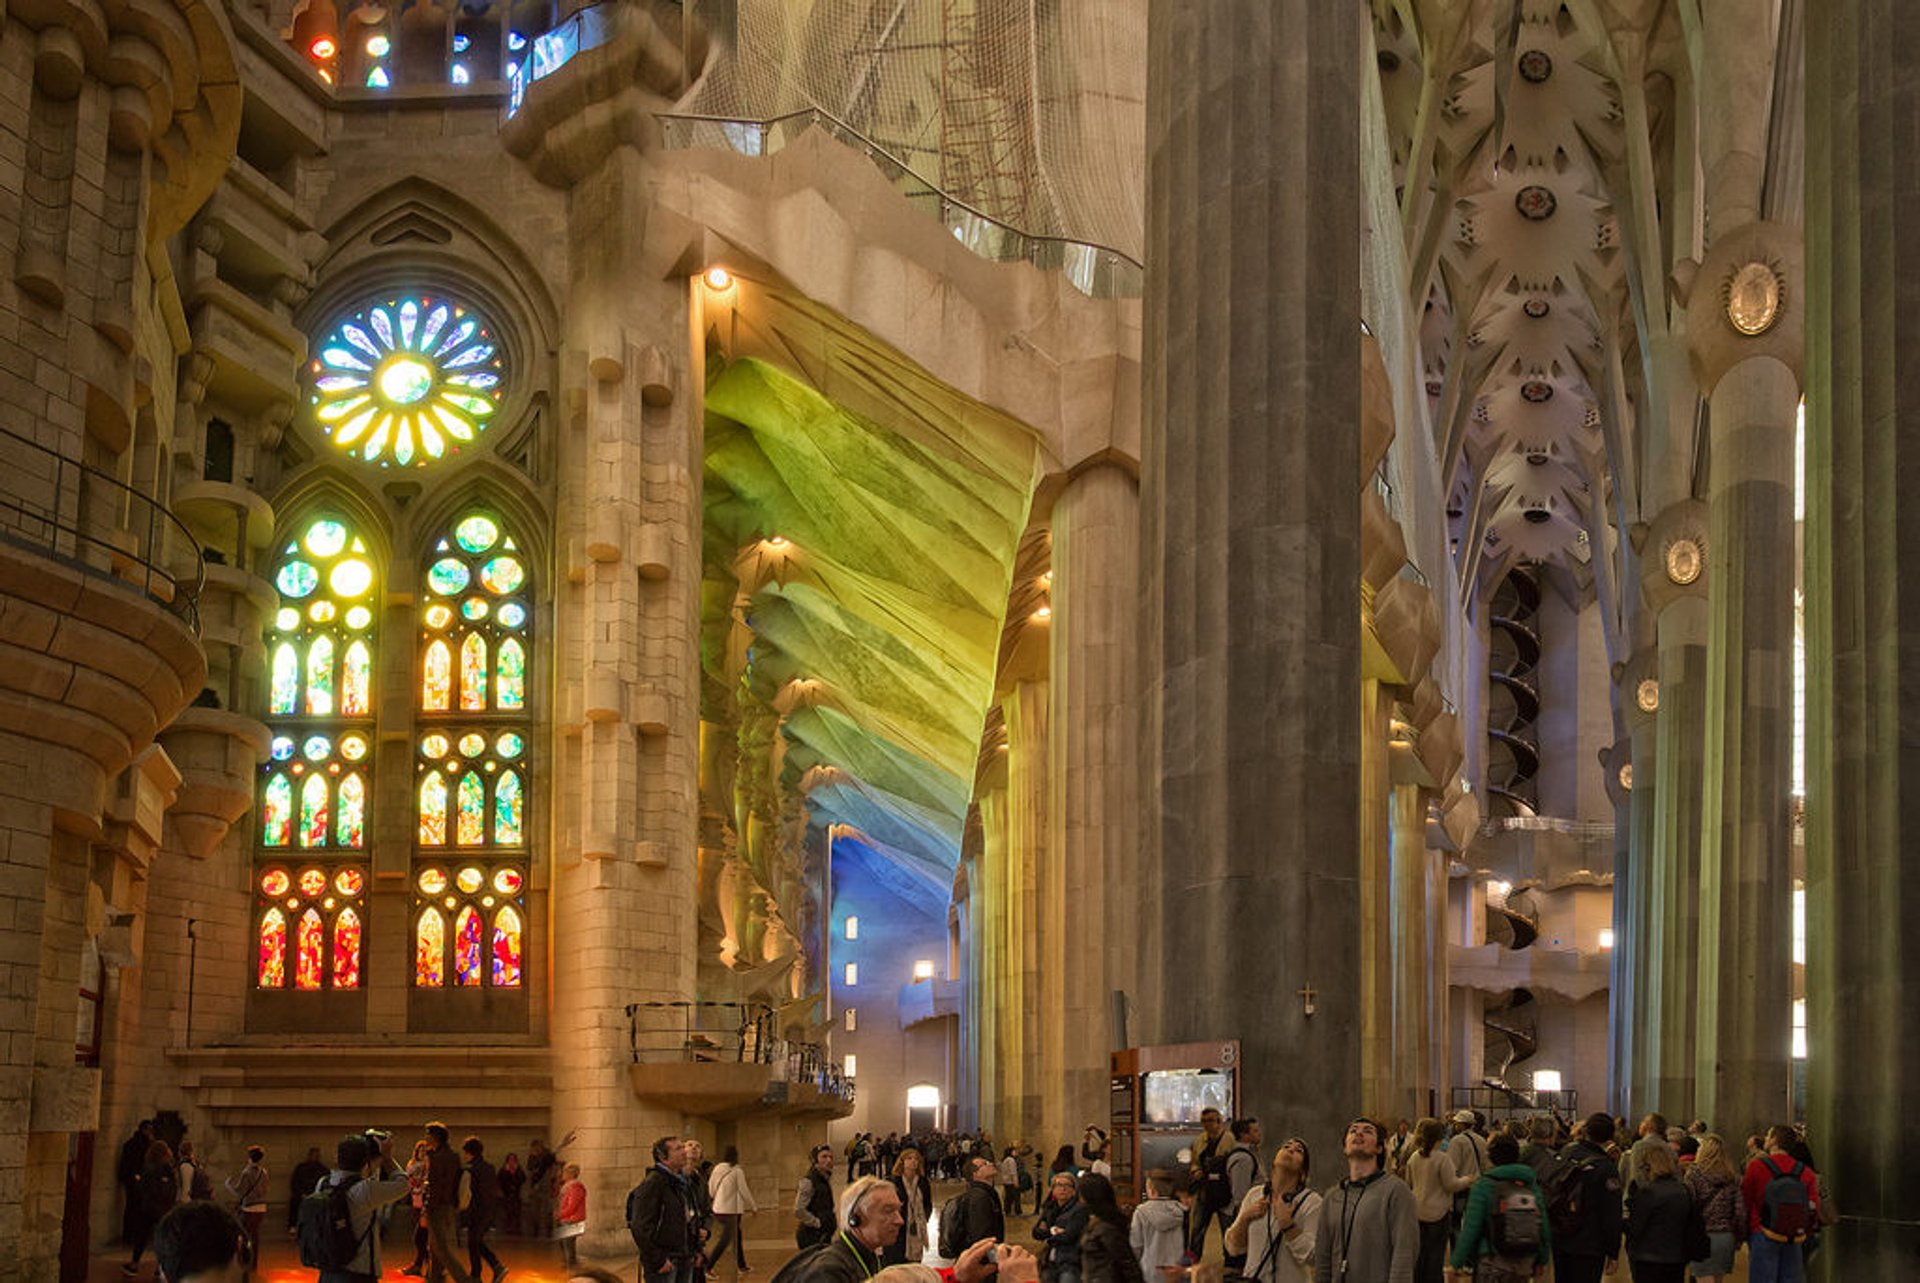 Best time to see Sagrada Familia in Barcelona